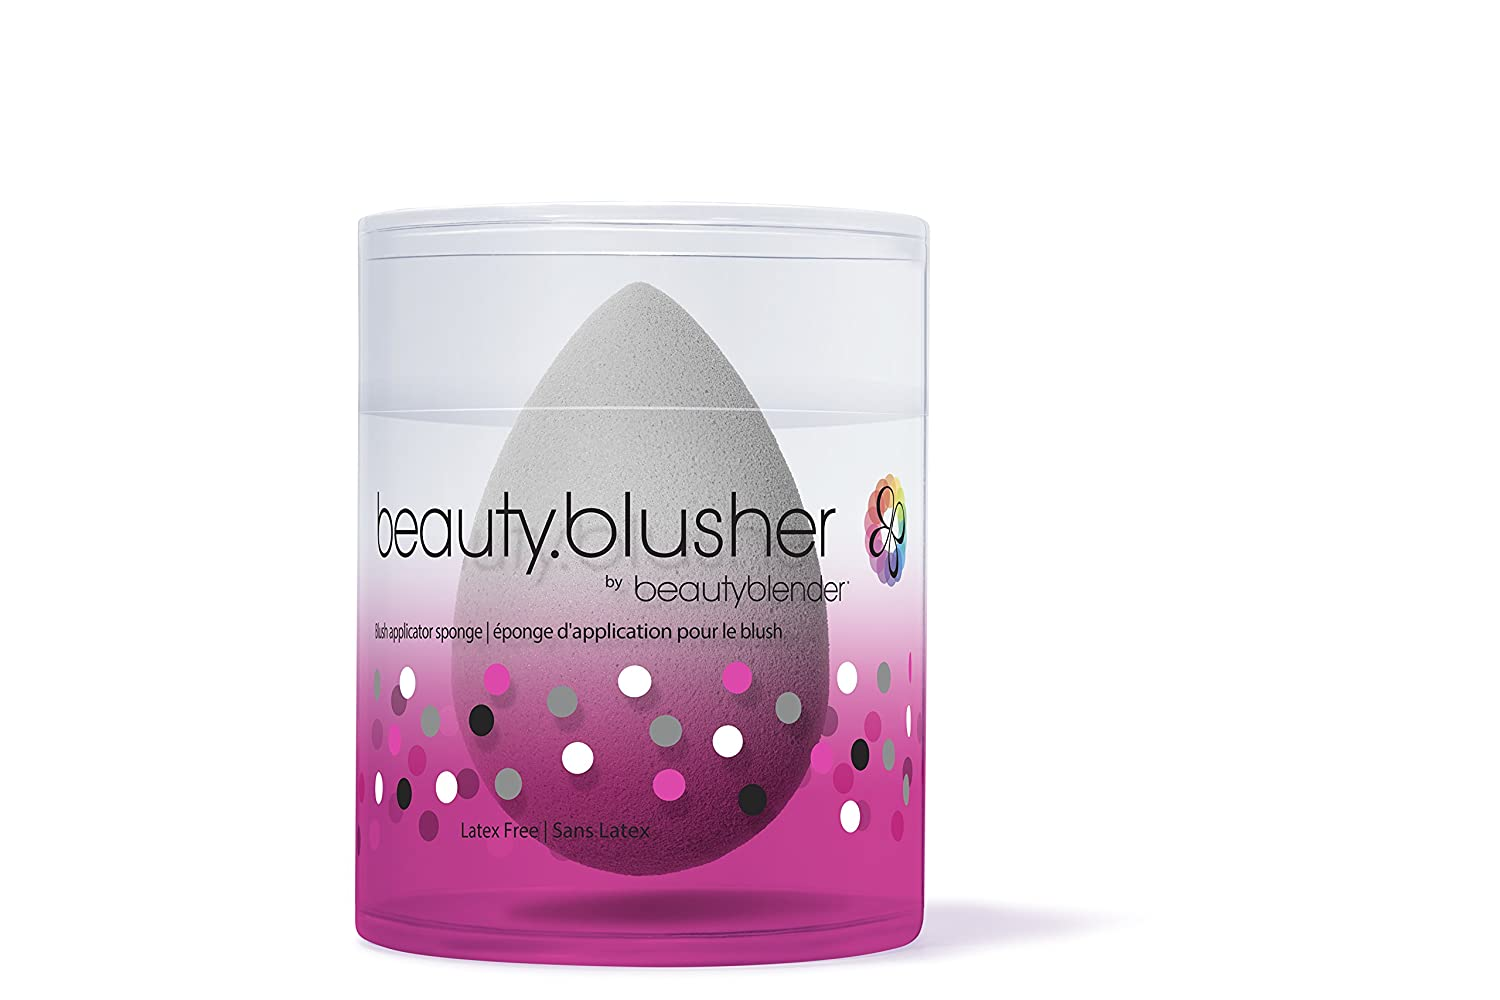 beautyblender beauty.blusher: Makeup Sponge for Cream & Powder Blushes